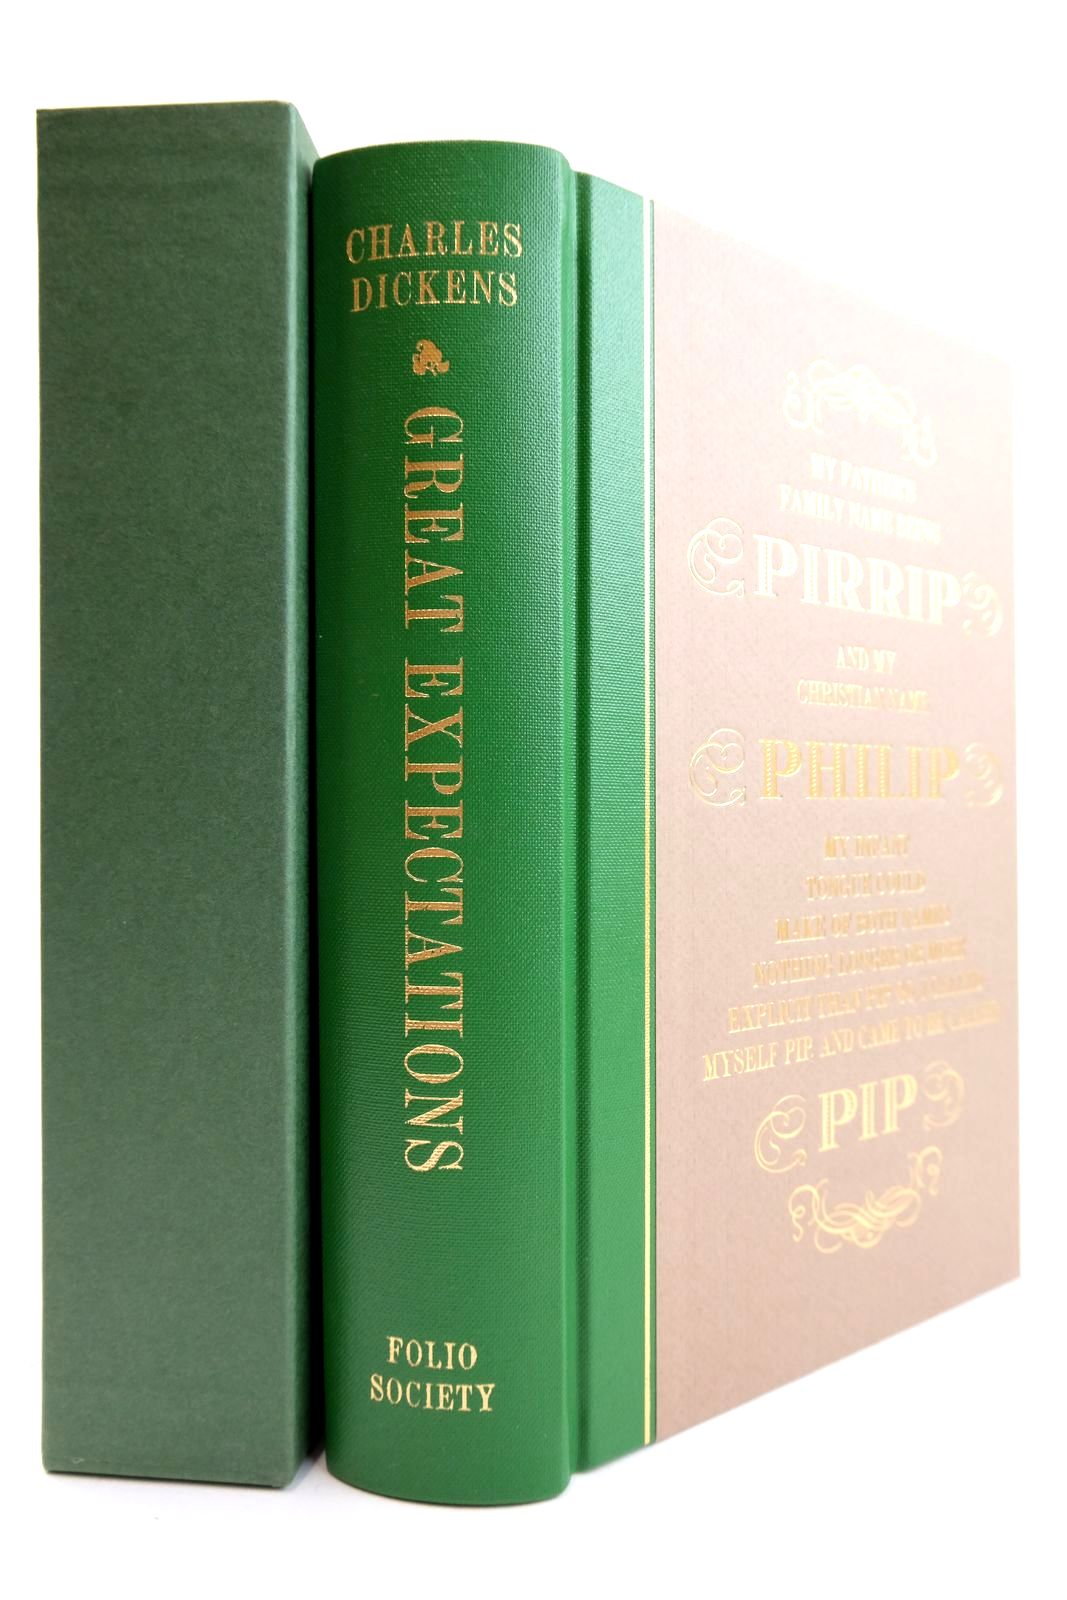 Photo of GREAT EXPECTATIONS written by Dickens, Charles Taylor, D.J. illustrated by Stone, Marcus published by Folio Society (STOCK CODE: 2132378)  for sale by Stella & Rose's Books